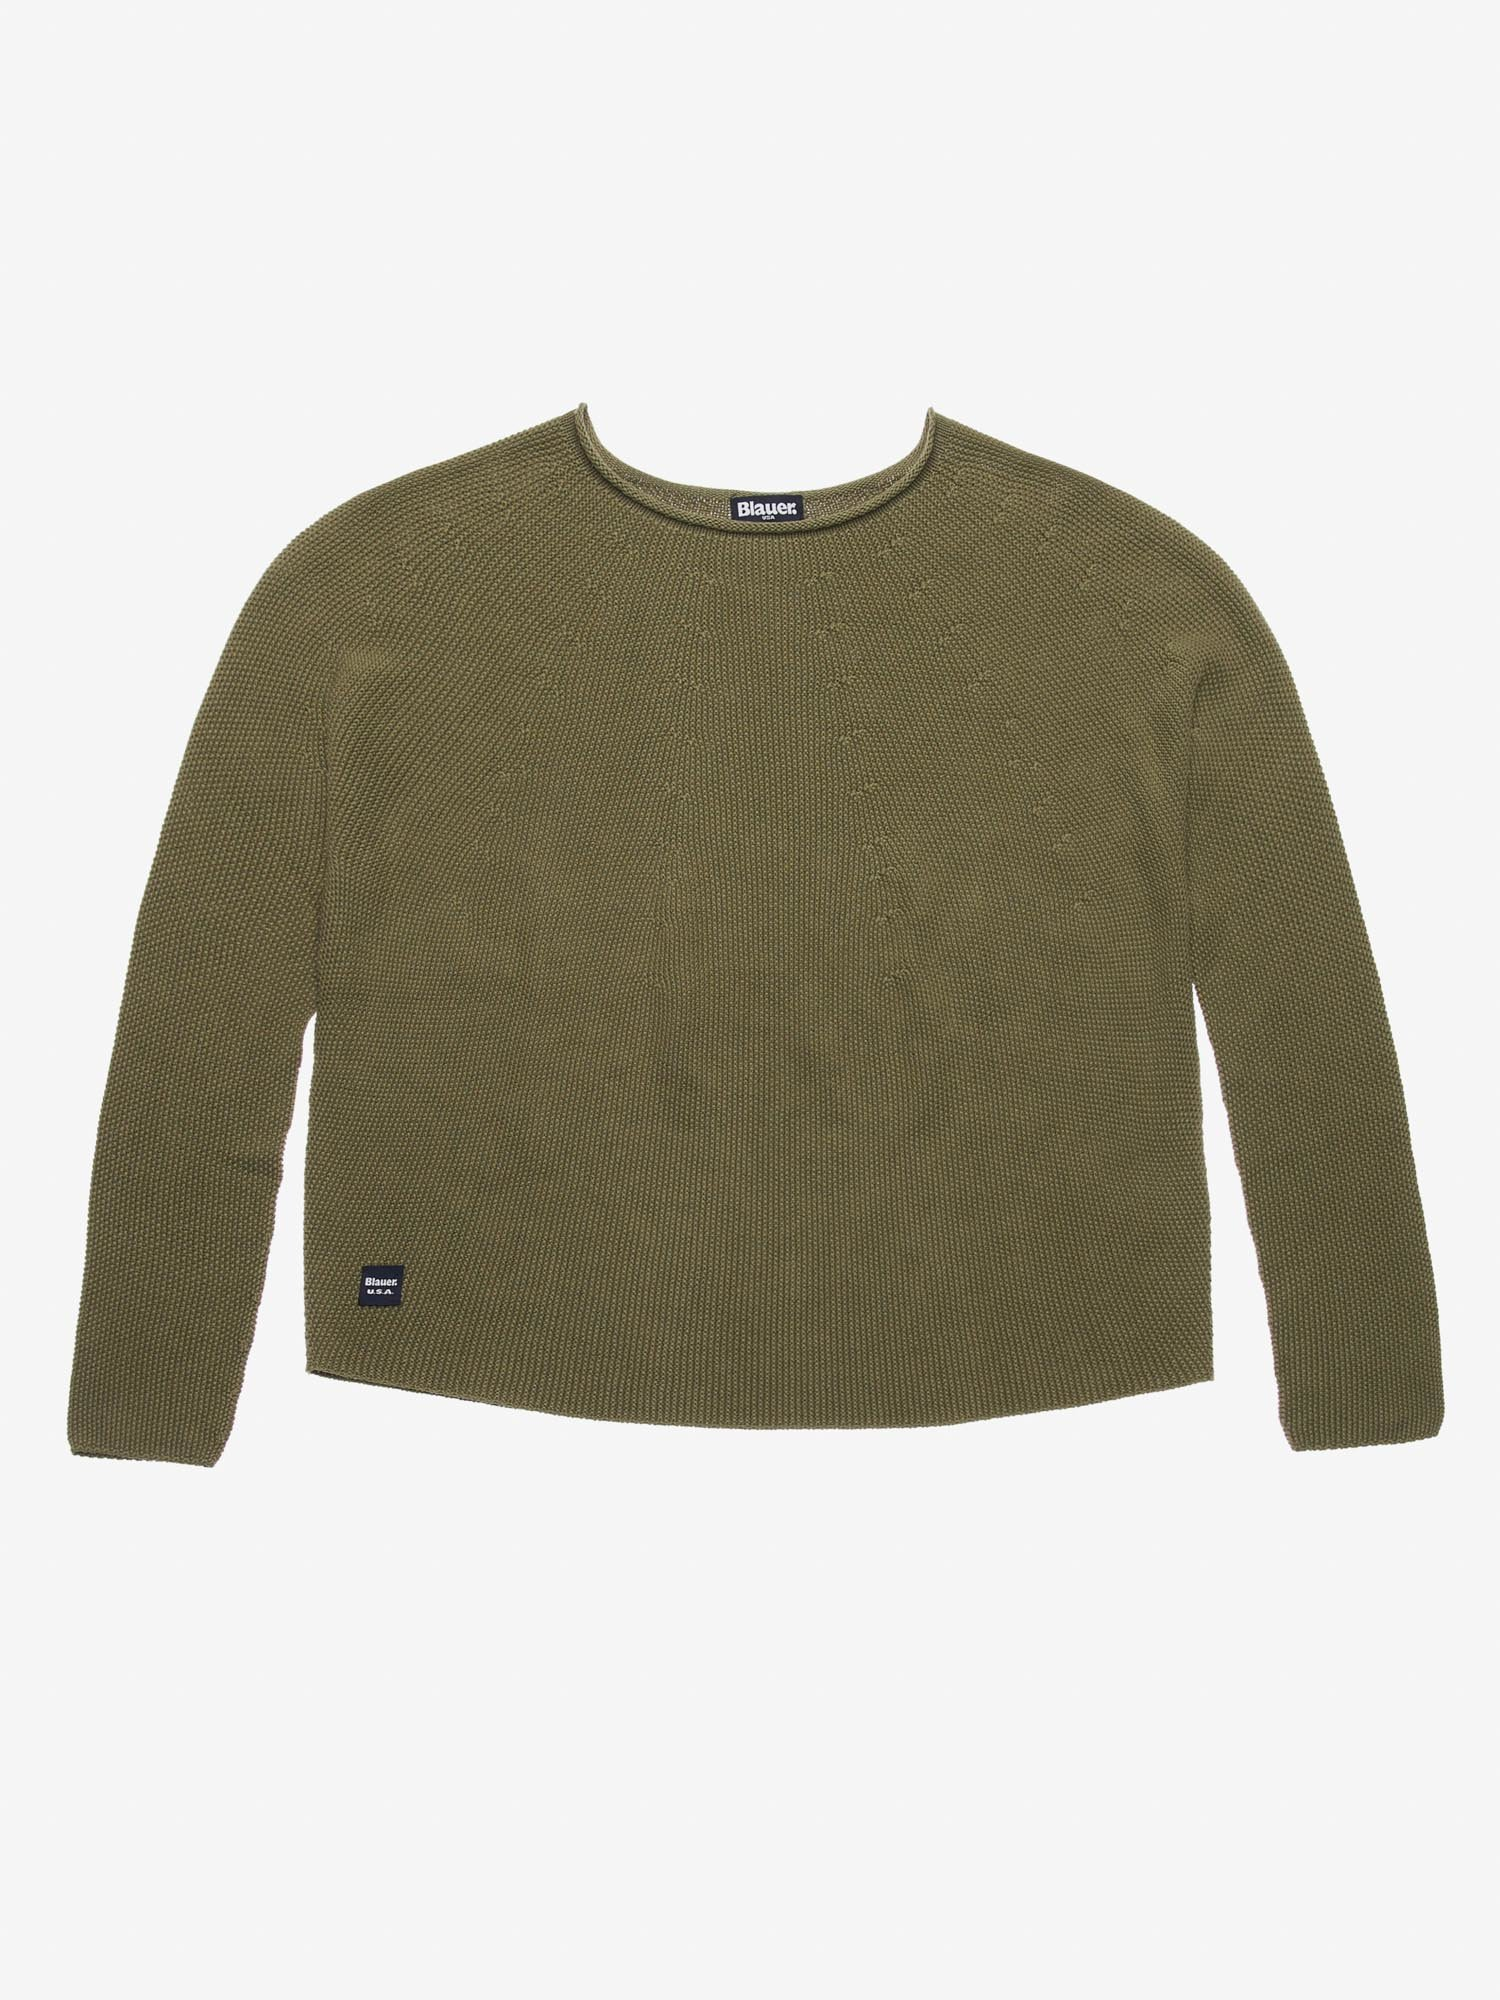 Blauer - SHORT CREW NECK SWEATER - Dark Green - Blauer